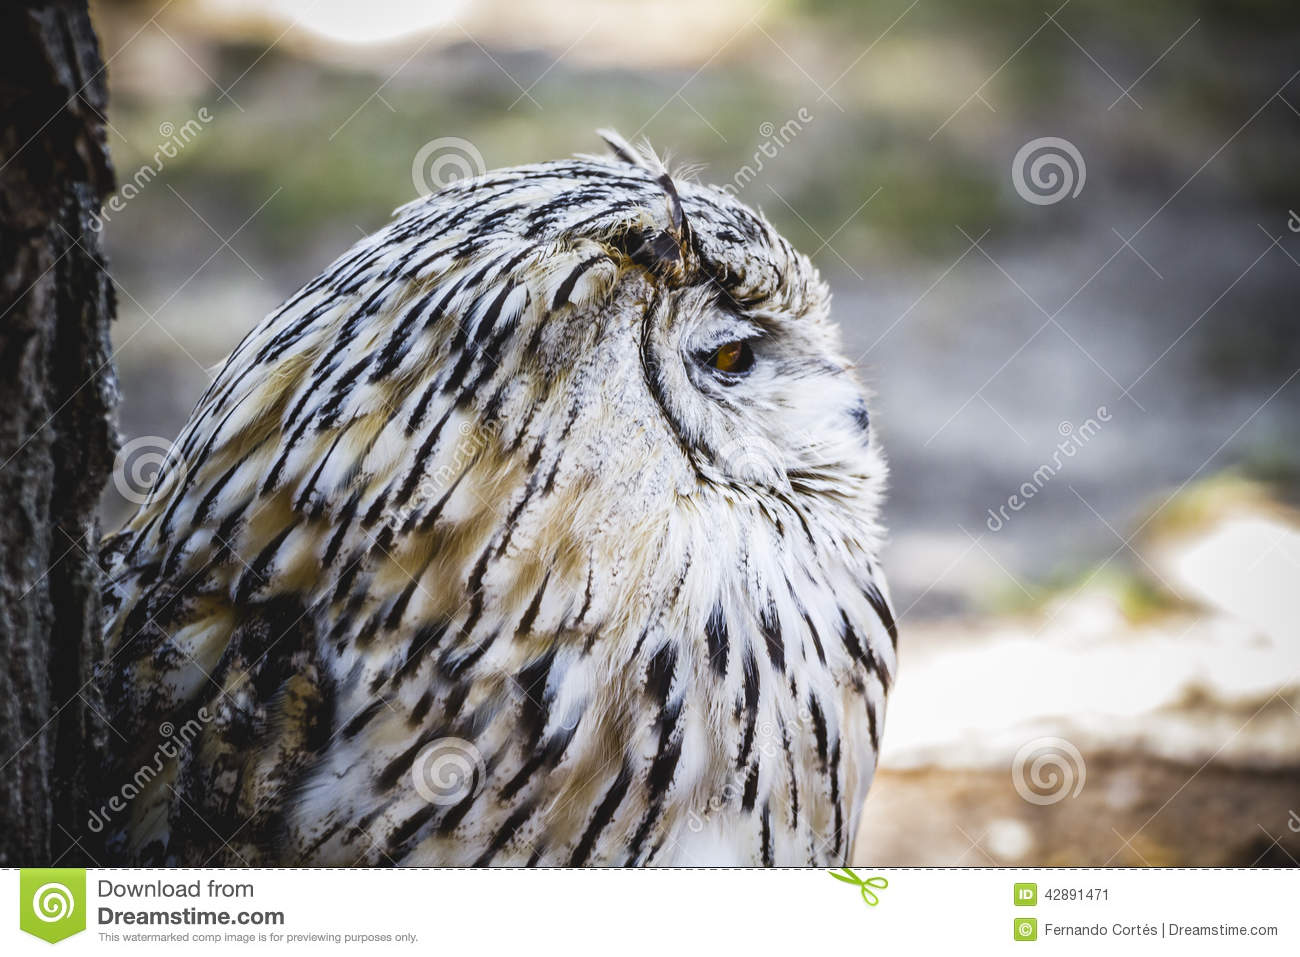 Spanish Owl In A Medieval Fair Raptors Stock Image Image Of Nature Animals 42891471